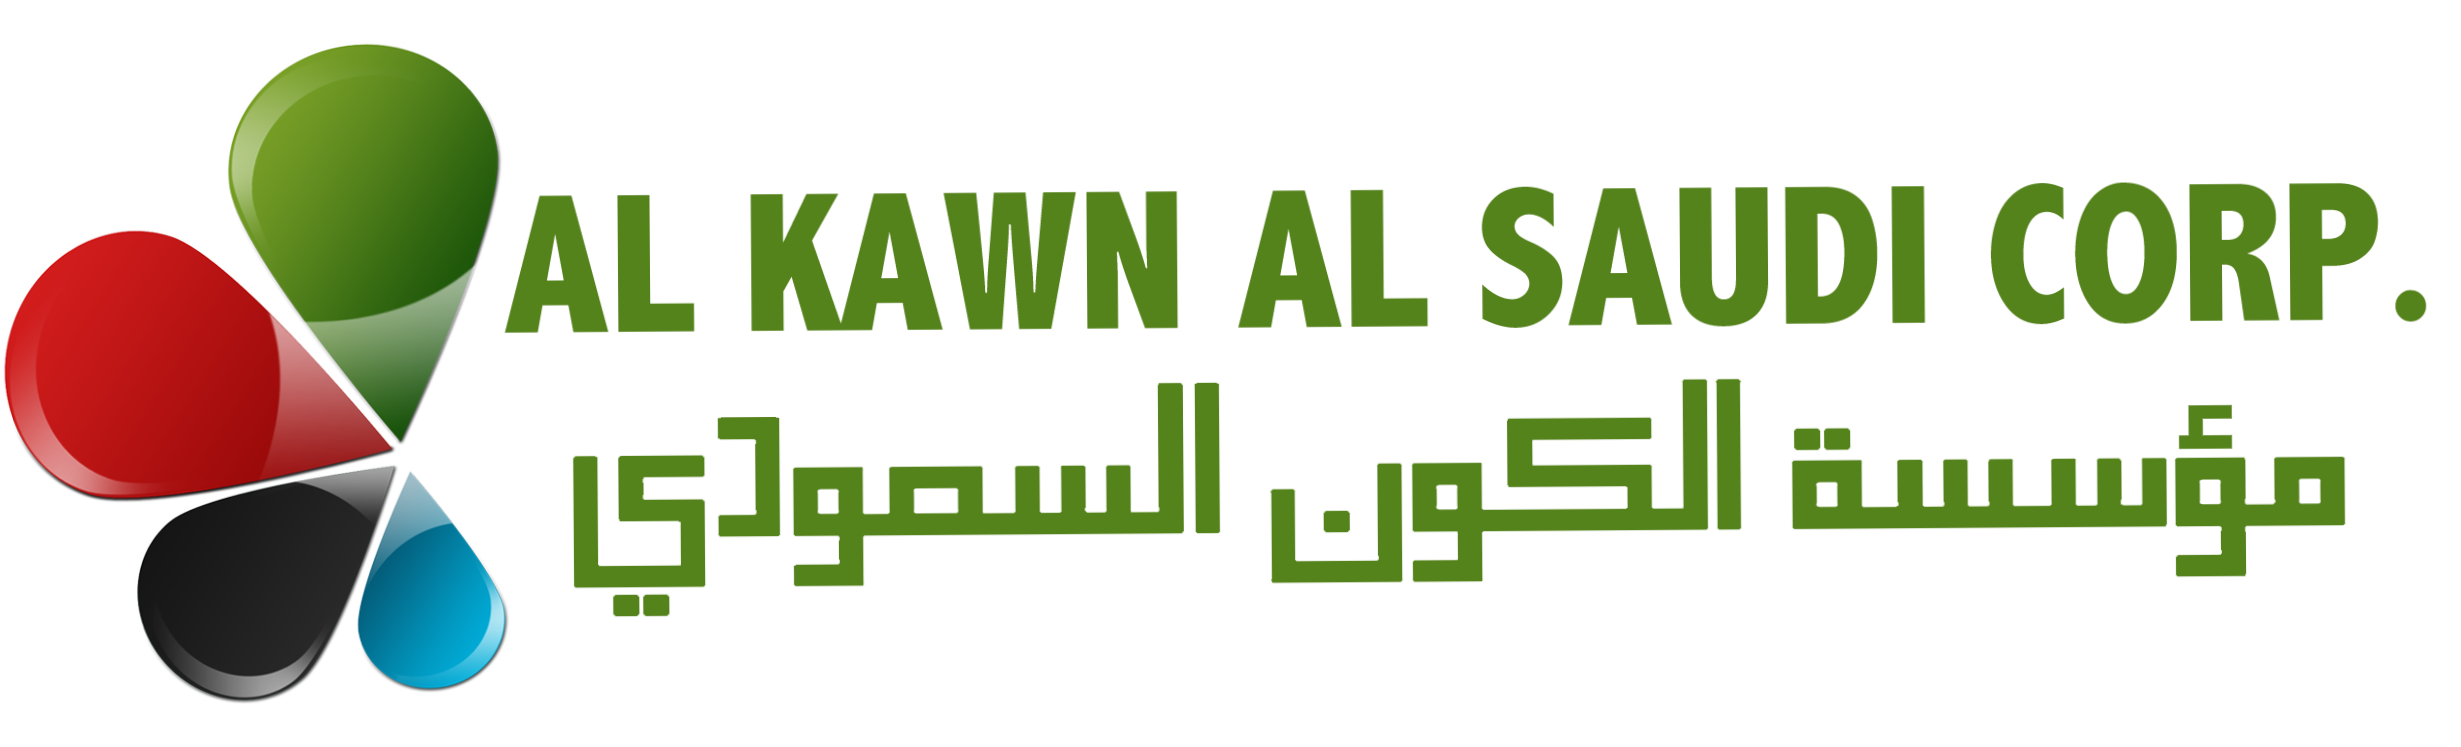 ALKAWN ALSAUDI CORP  – Distributor of Valves, Pumps, Motors